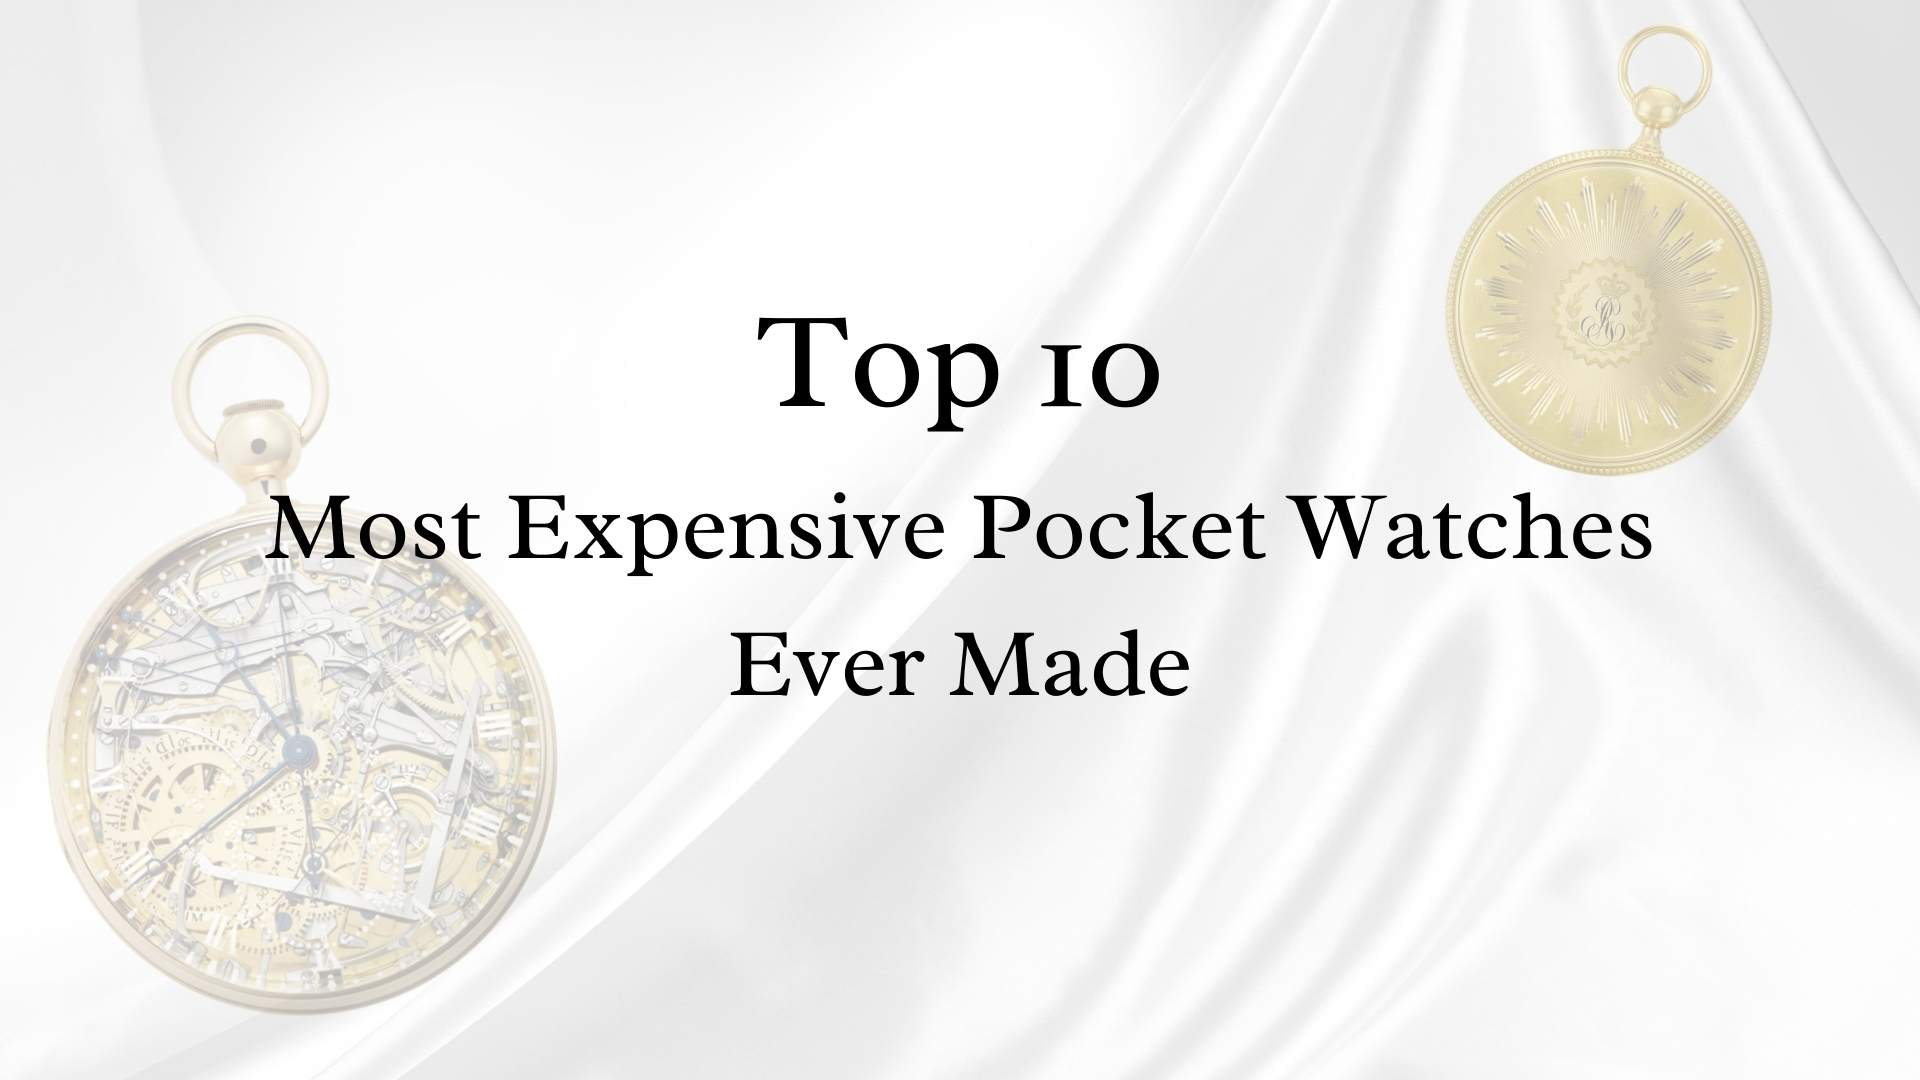 Top 10 Most Expensive Pocket Watches Ever Made